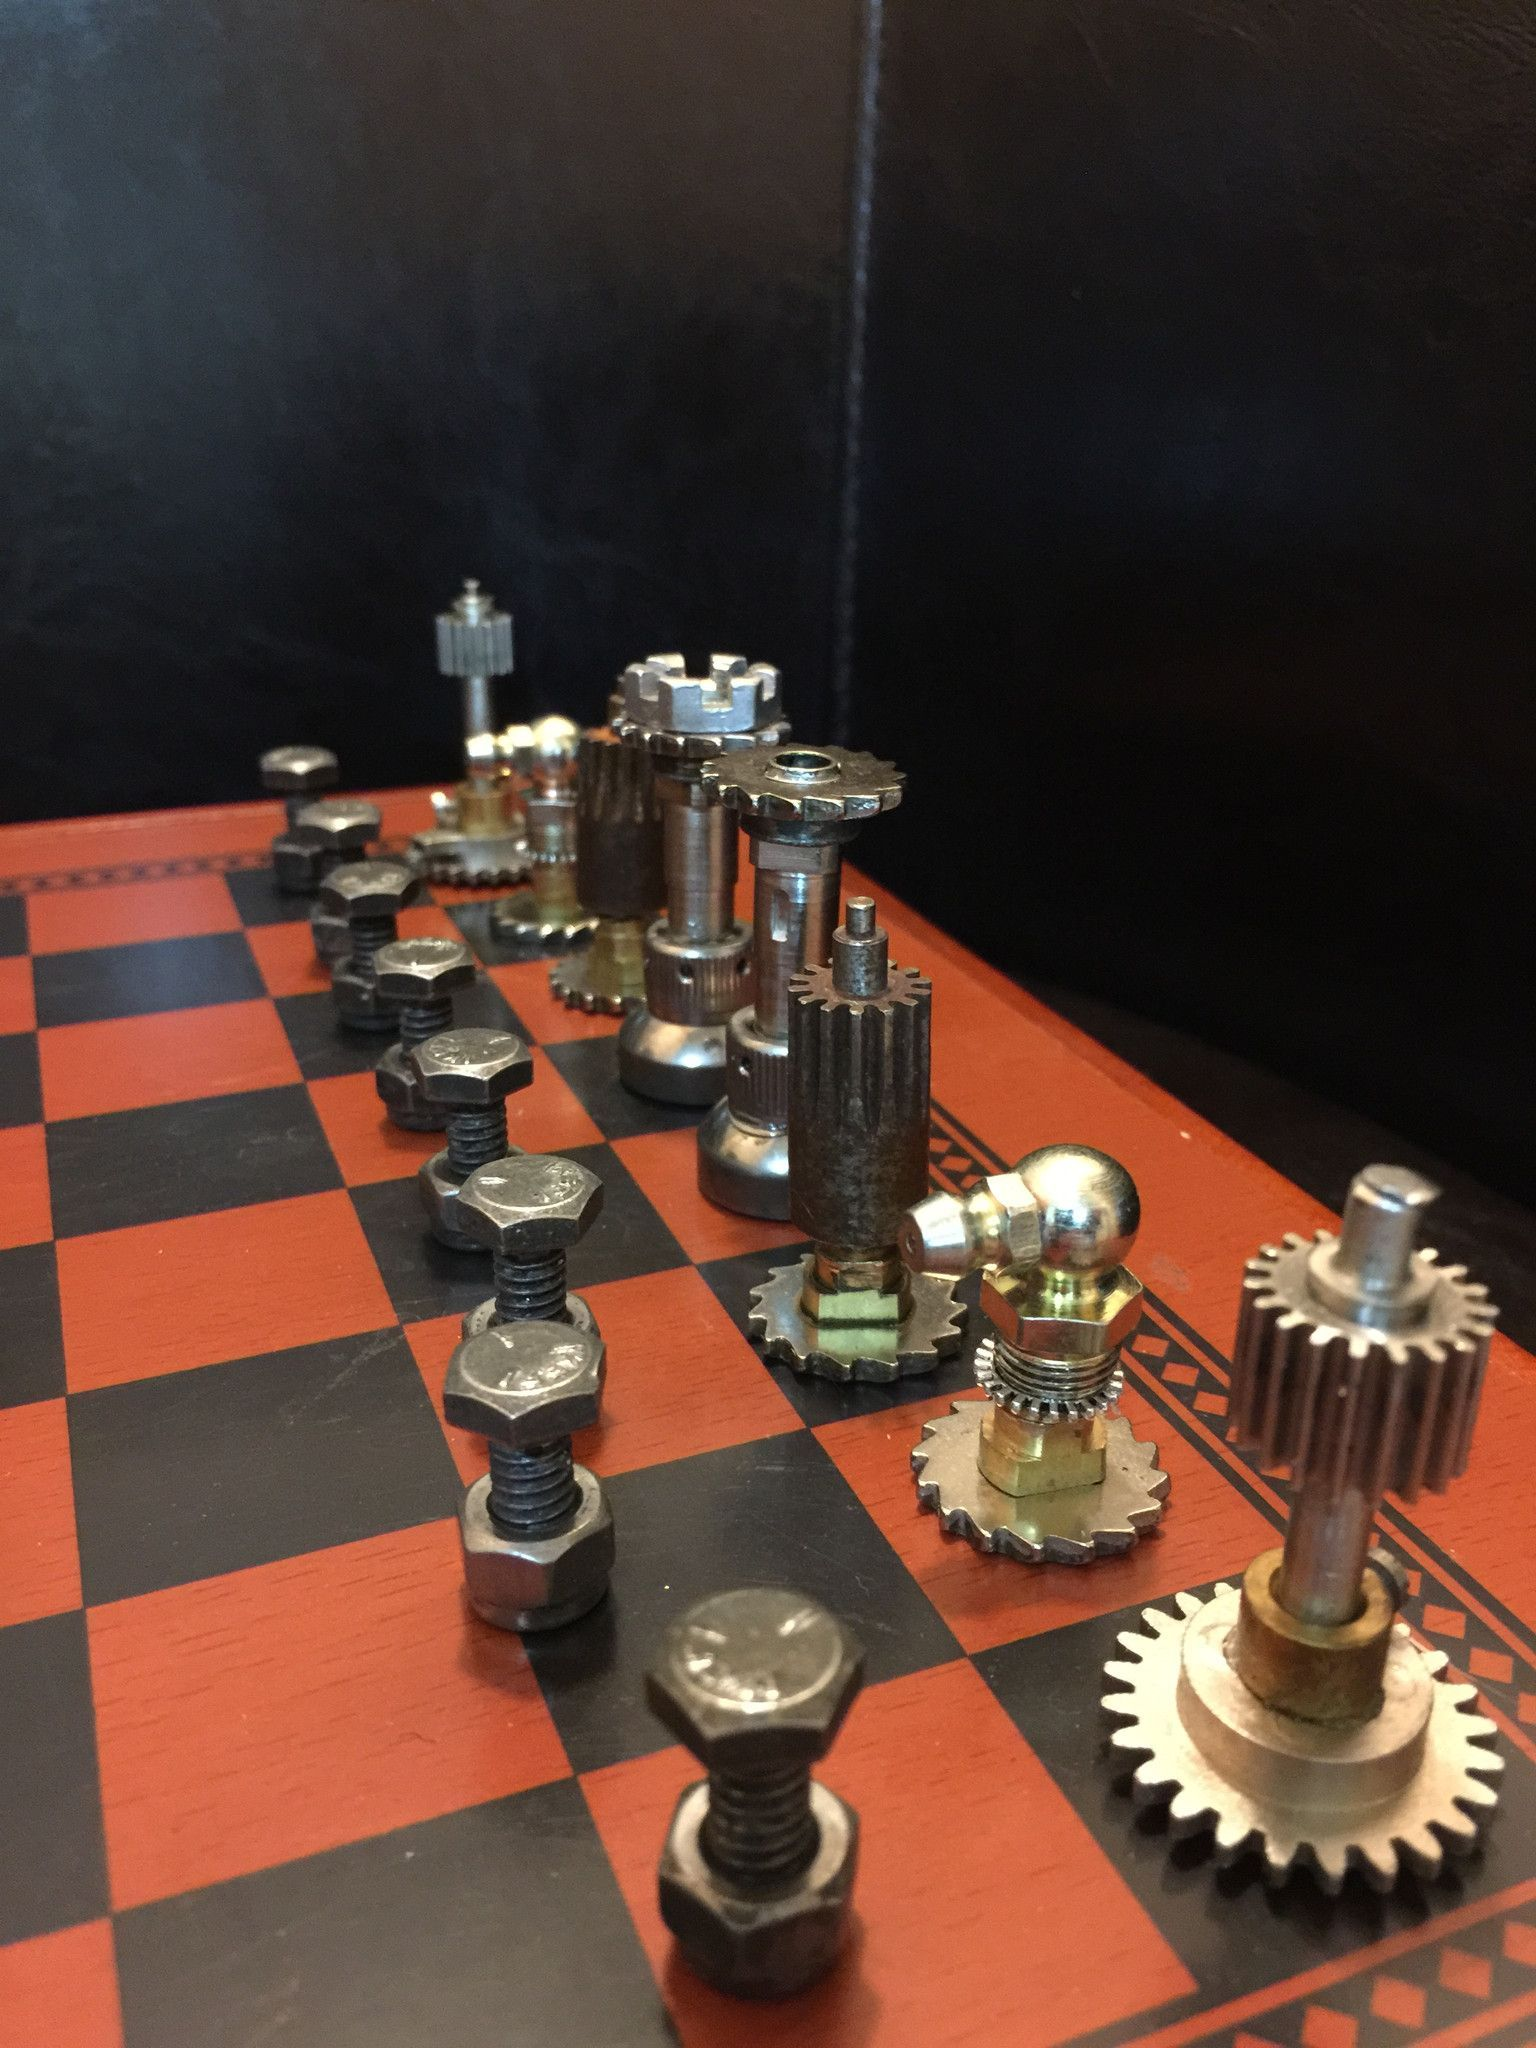 Chest Game Set Steampunk Chess Set Play Chess Sets Chess And Gaming